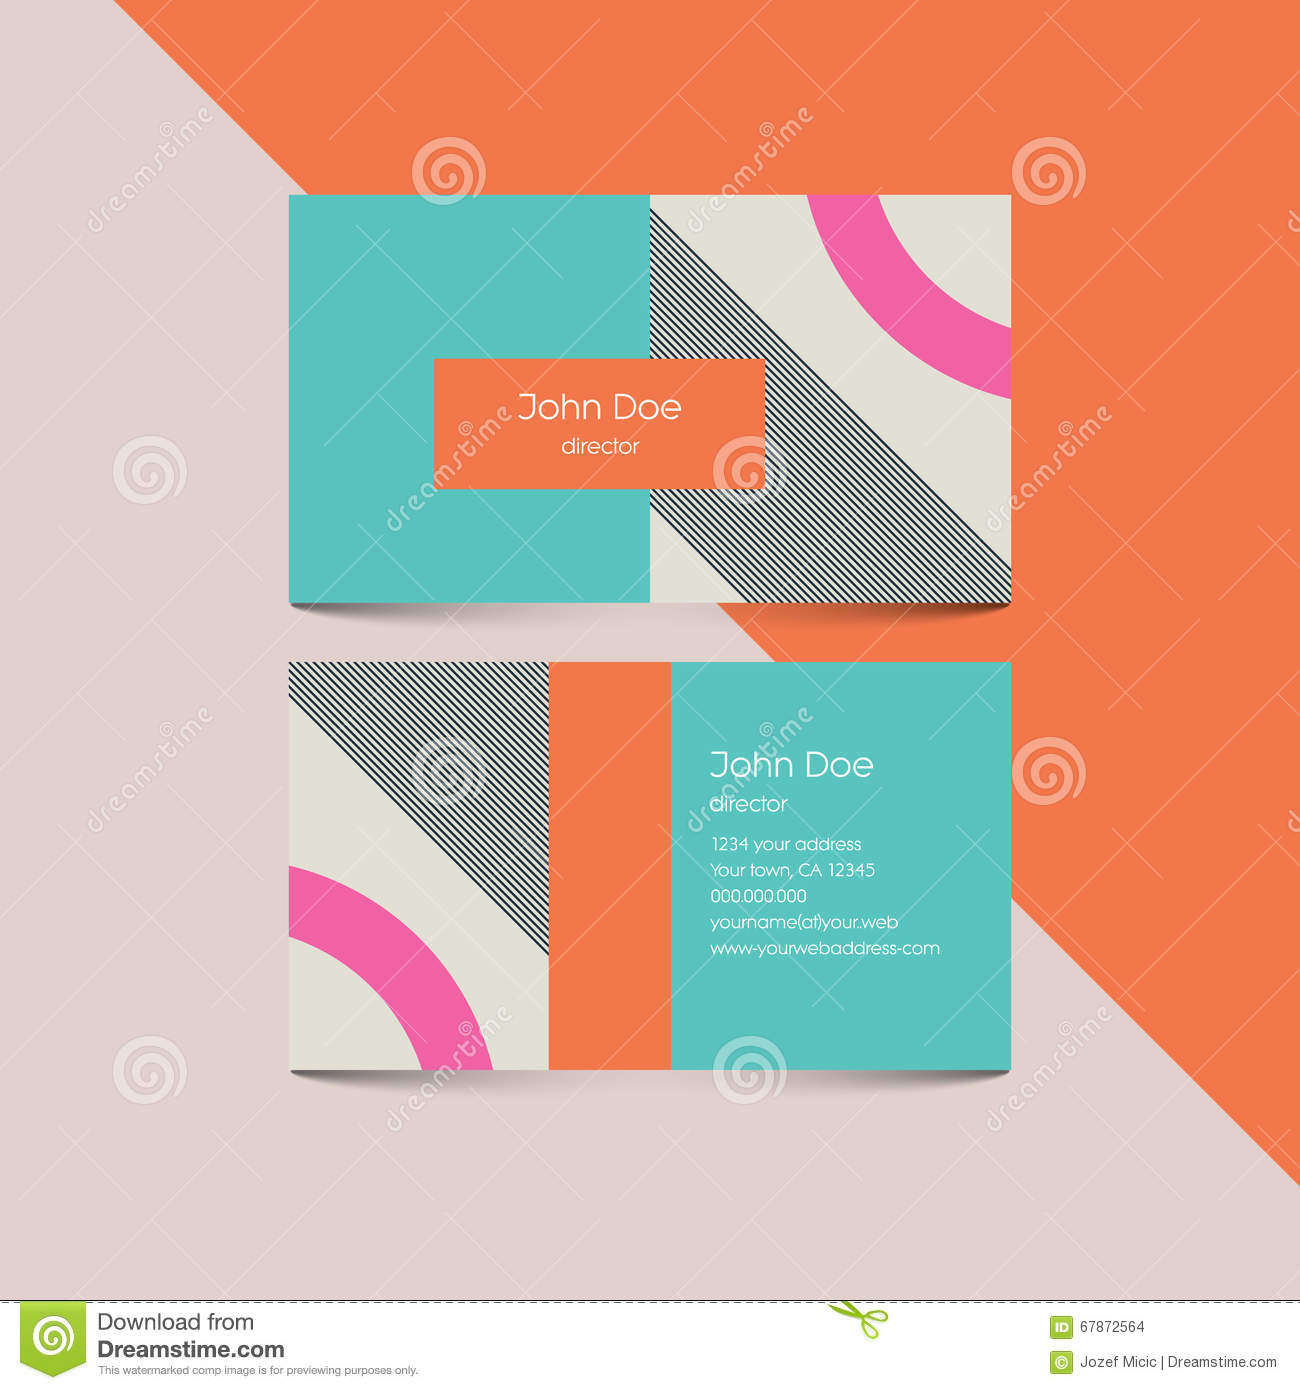 Material design business card template with 80s style background download material design business card template with 80s style background modern retro elements and geometric wajeb